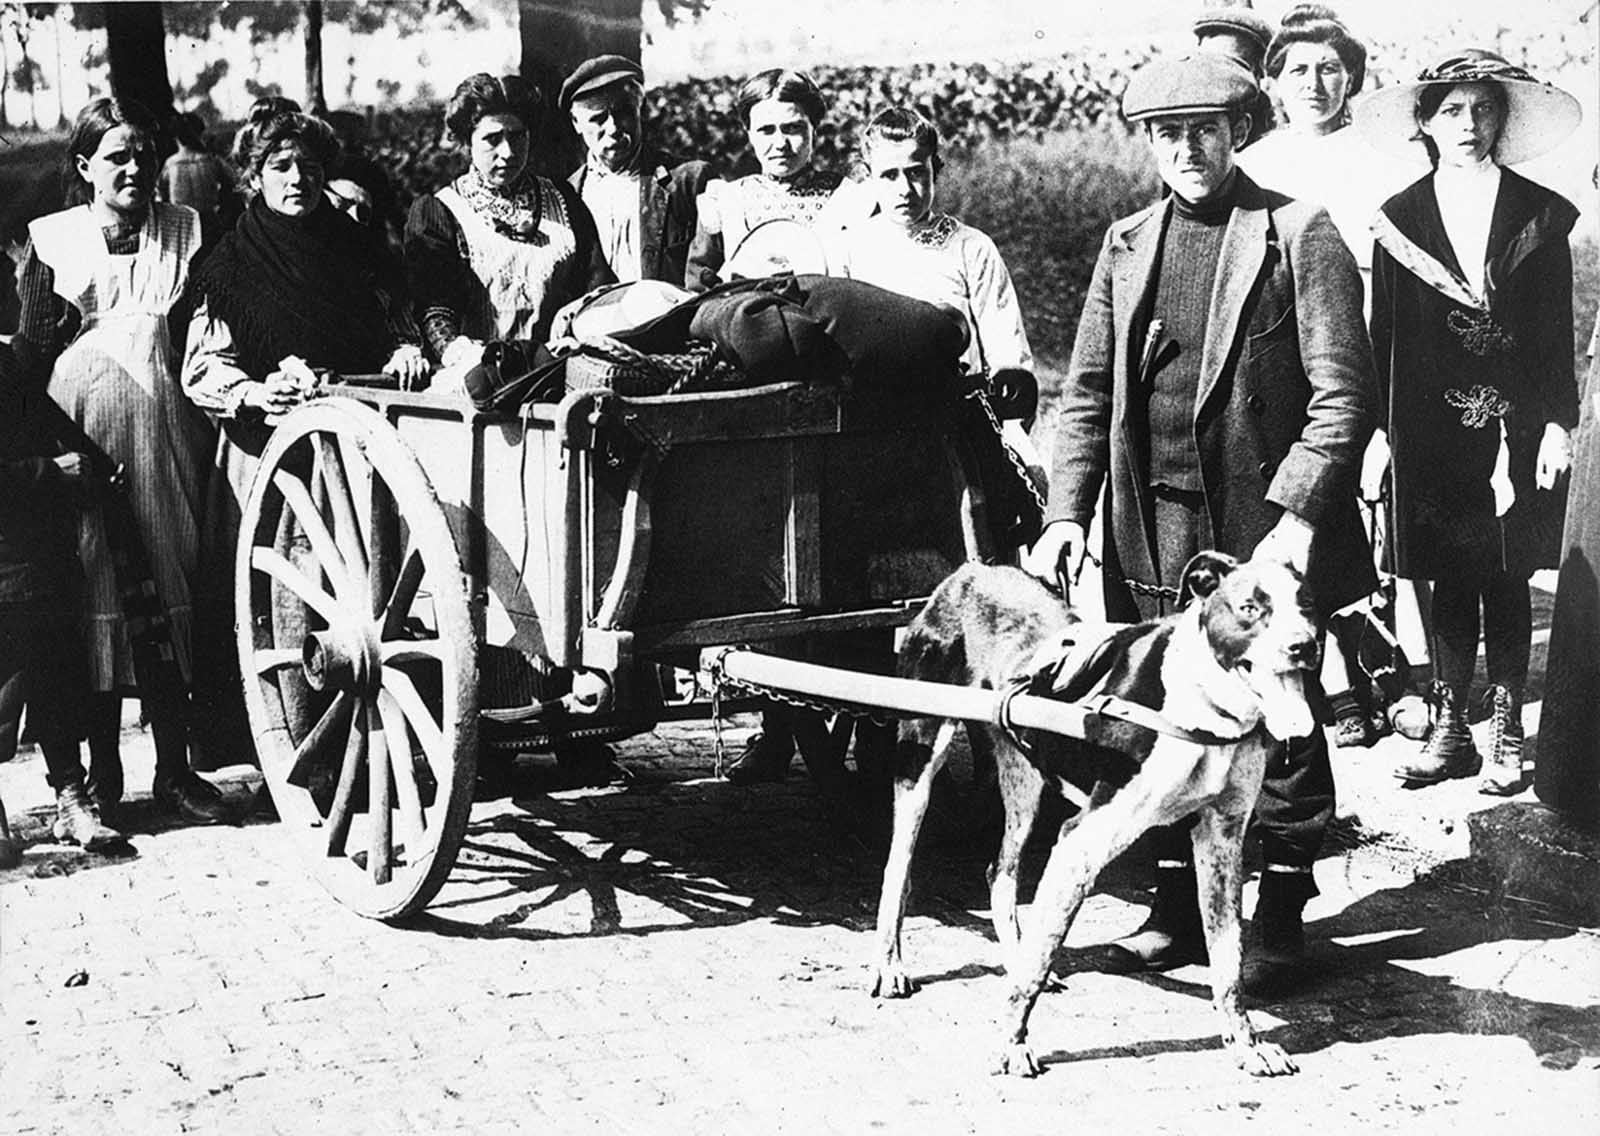 Belgian refugees leaving Brussels, their belongings in a wagon pulled by a dog, 1914.